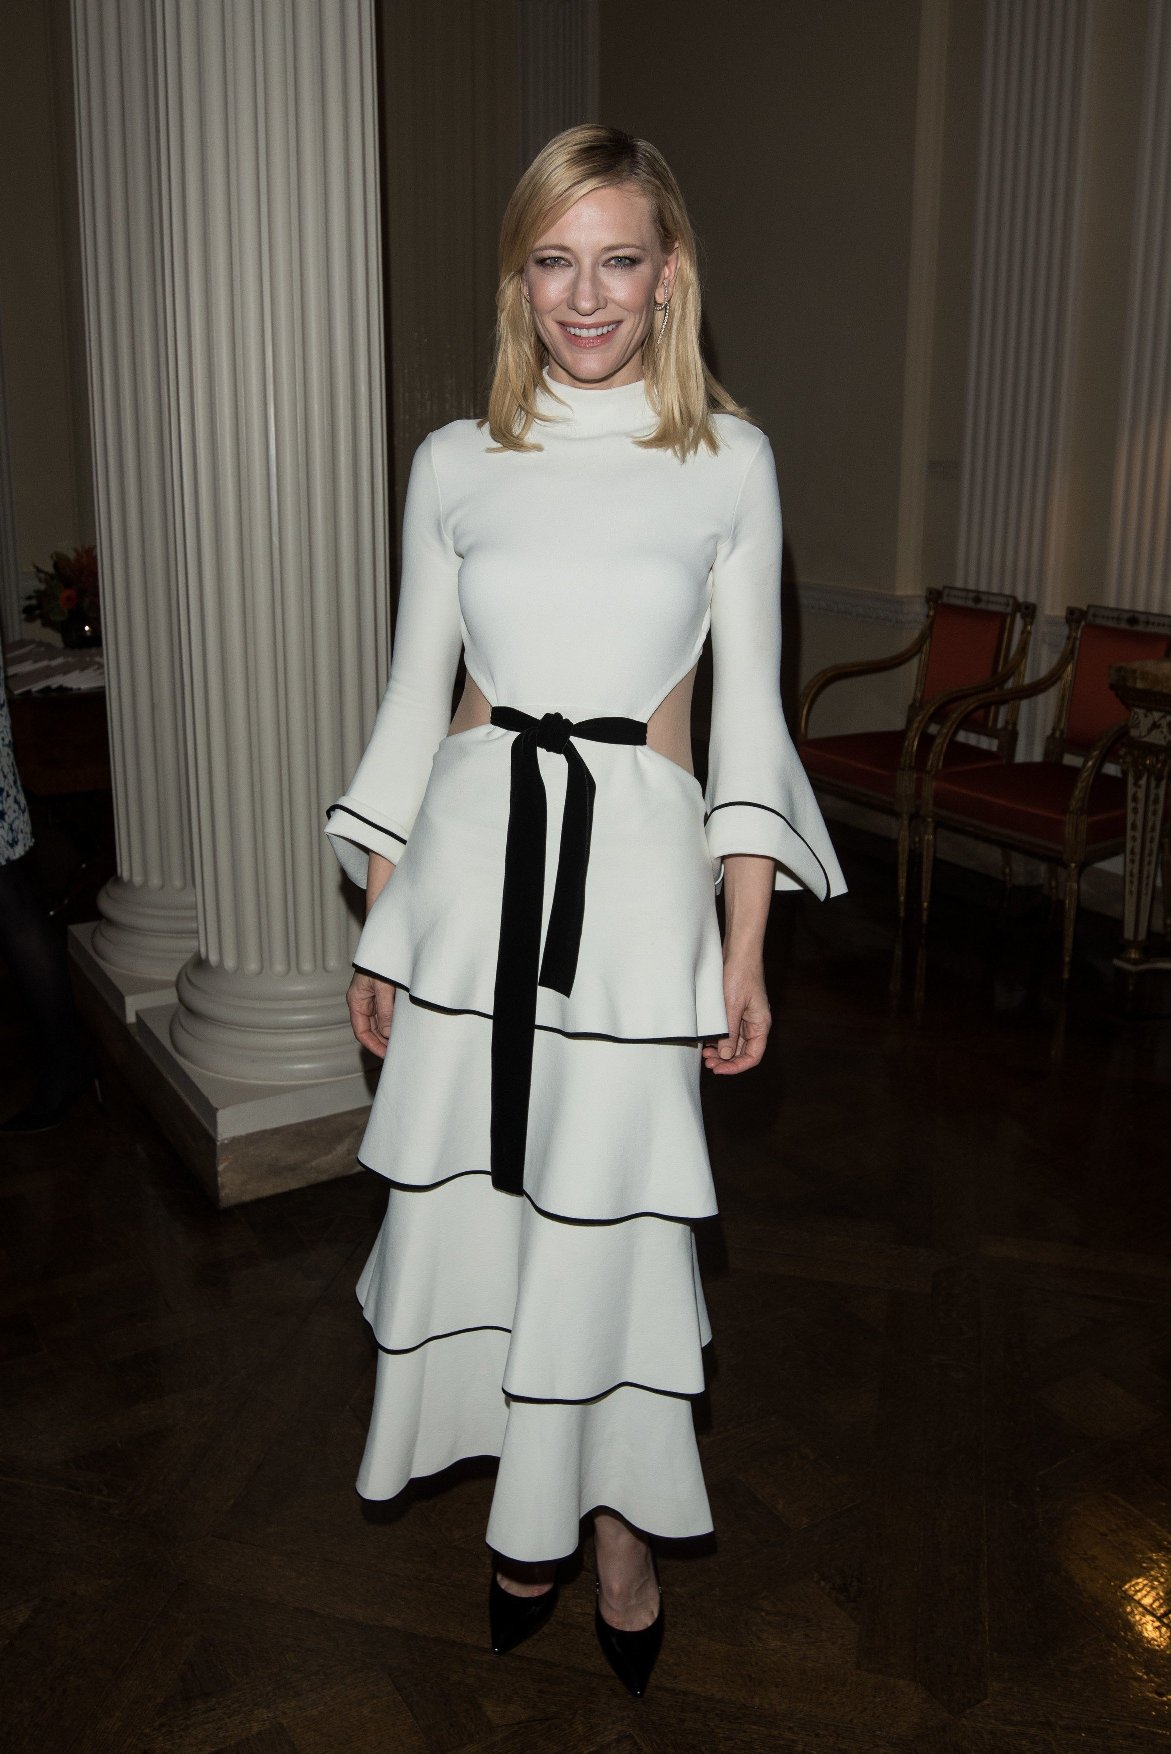 (5249403k) Cate Blanchett attends a pre-Oscars party held at the US Ambassador's Residence in London. Pre-Oscars Party, London, Britain - 14 Oct 2015, Image: 262437824, License: Rights-managed, Restrictions: , Model Release: no, Credit line: Profimedia, TEMP Rex Features